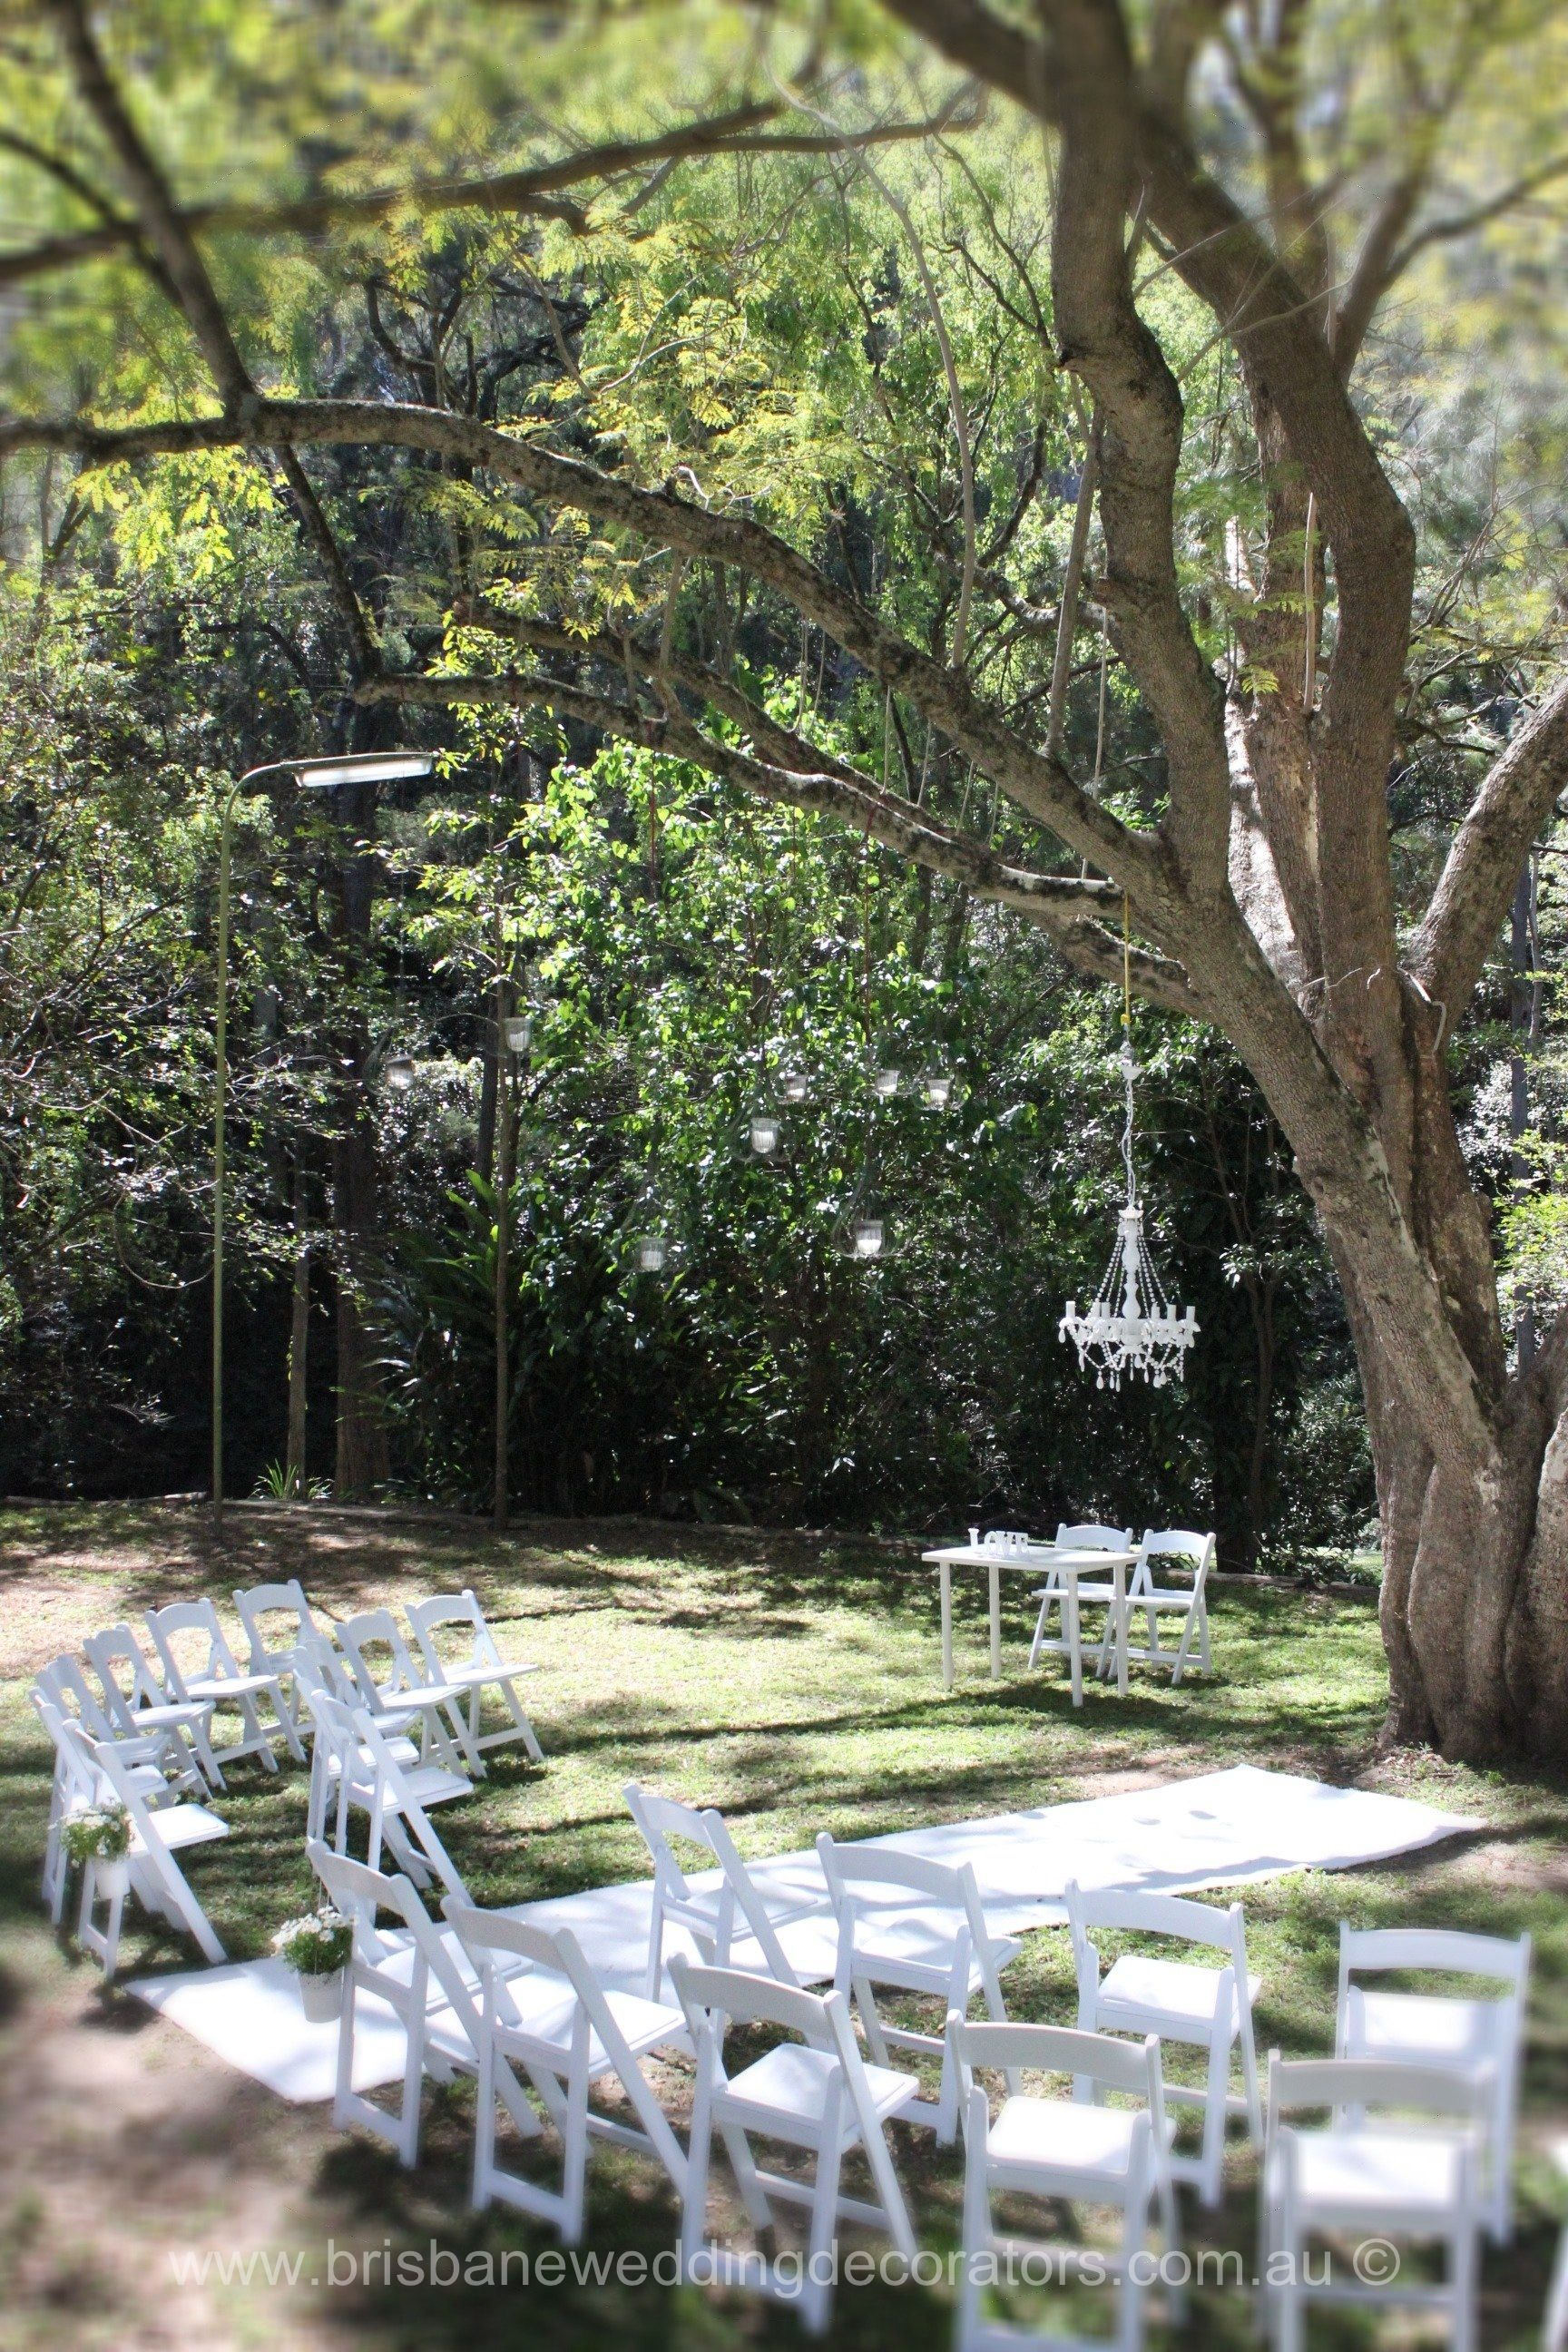 A Brisbane Wedding Decorators Styled White Ceremony Set In Brisbanes Bundaleer Rainforest Gardens With